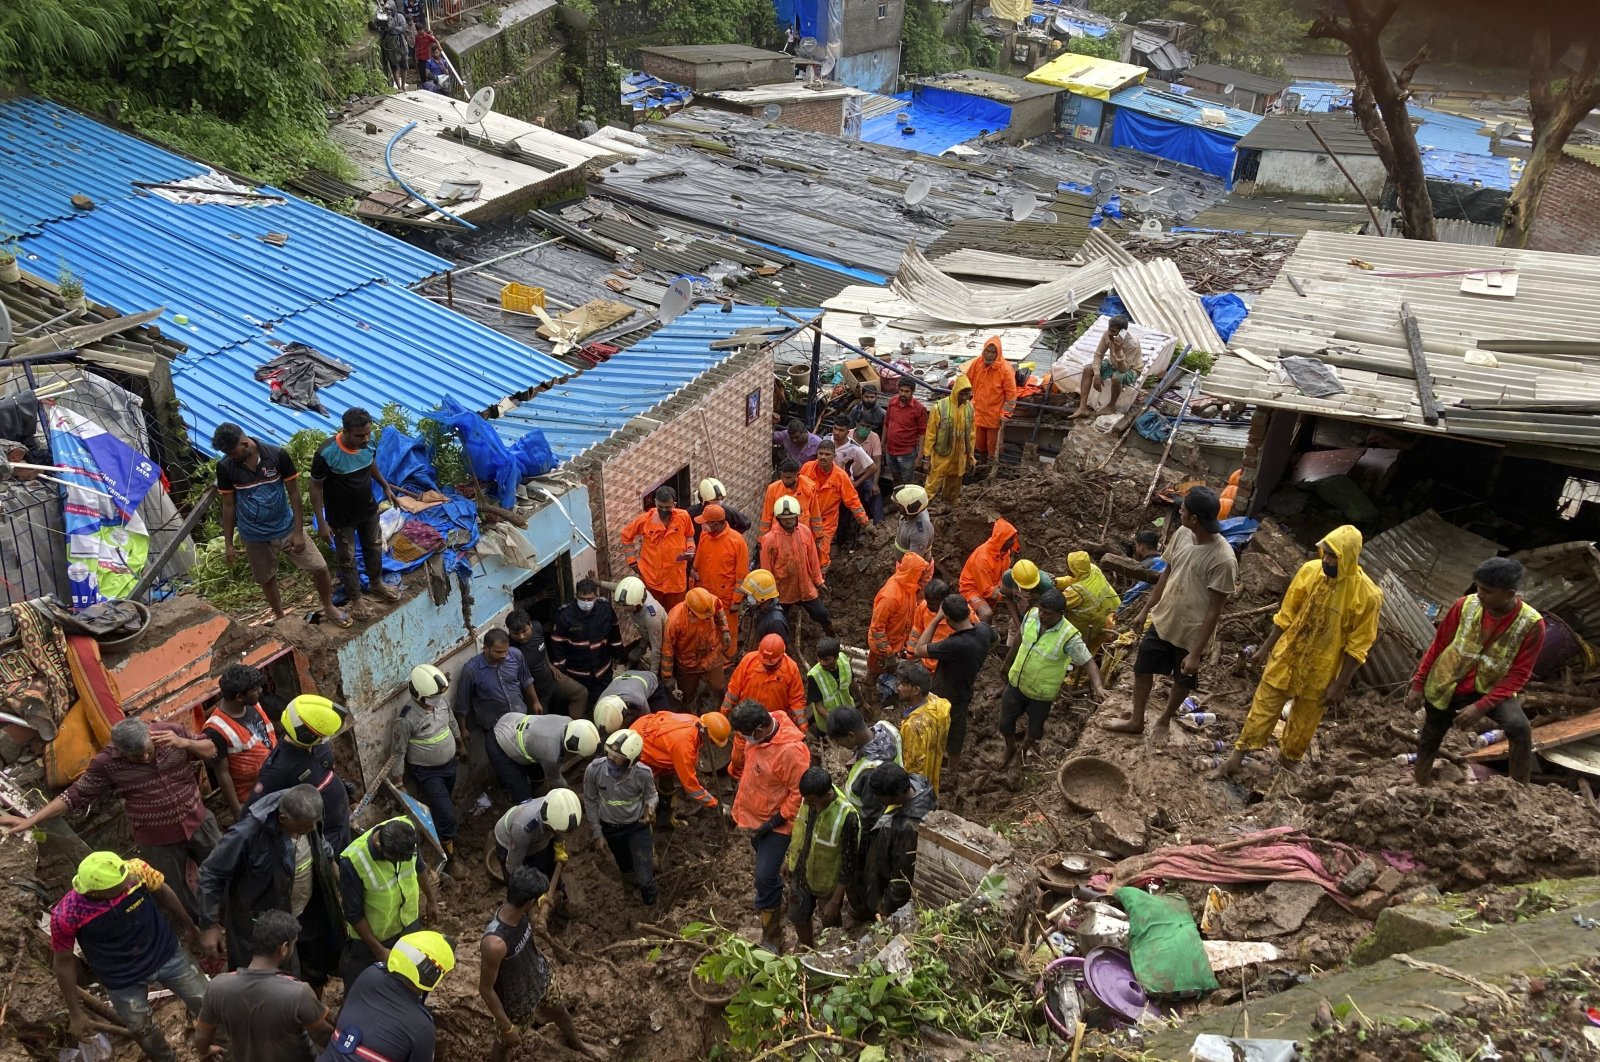 Rescuers look for survivors after a wall collapsed on several slum houses due to heavy monsoon rains in the Mahul area of Mumbai, India, Sunday, July 18, 2021. (AP Photo)